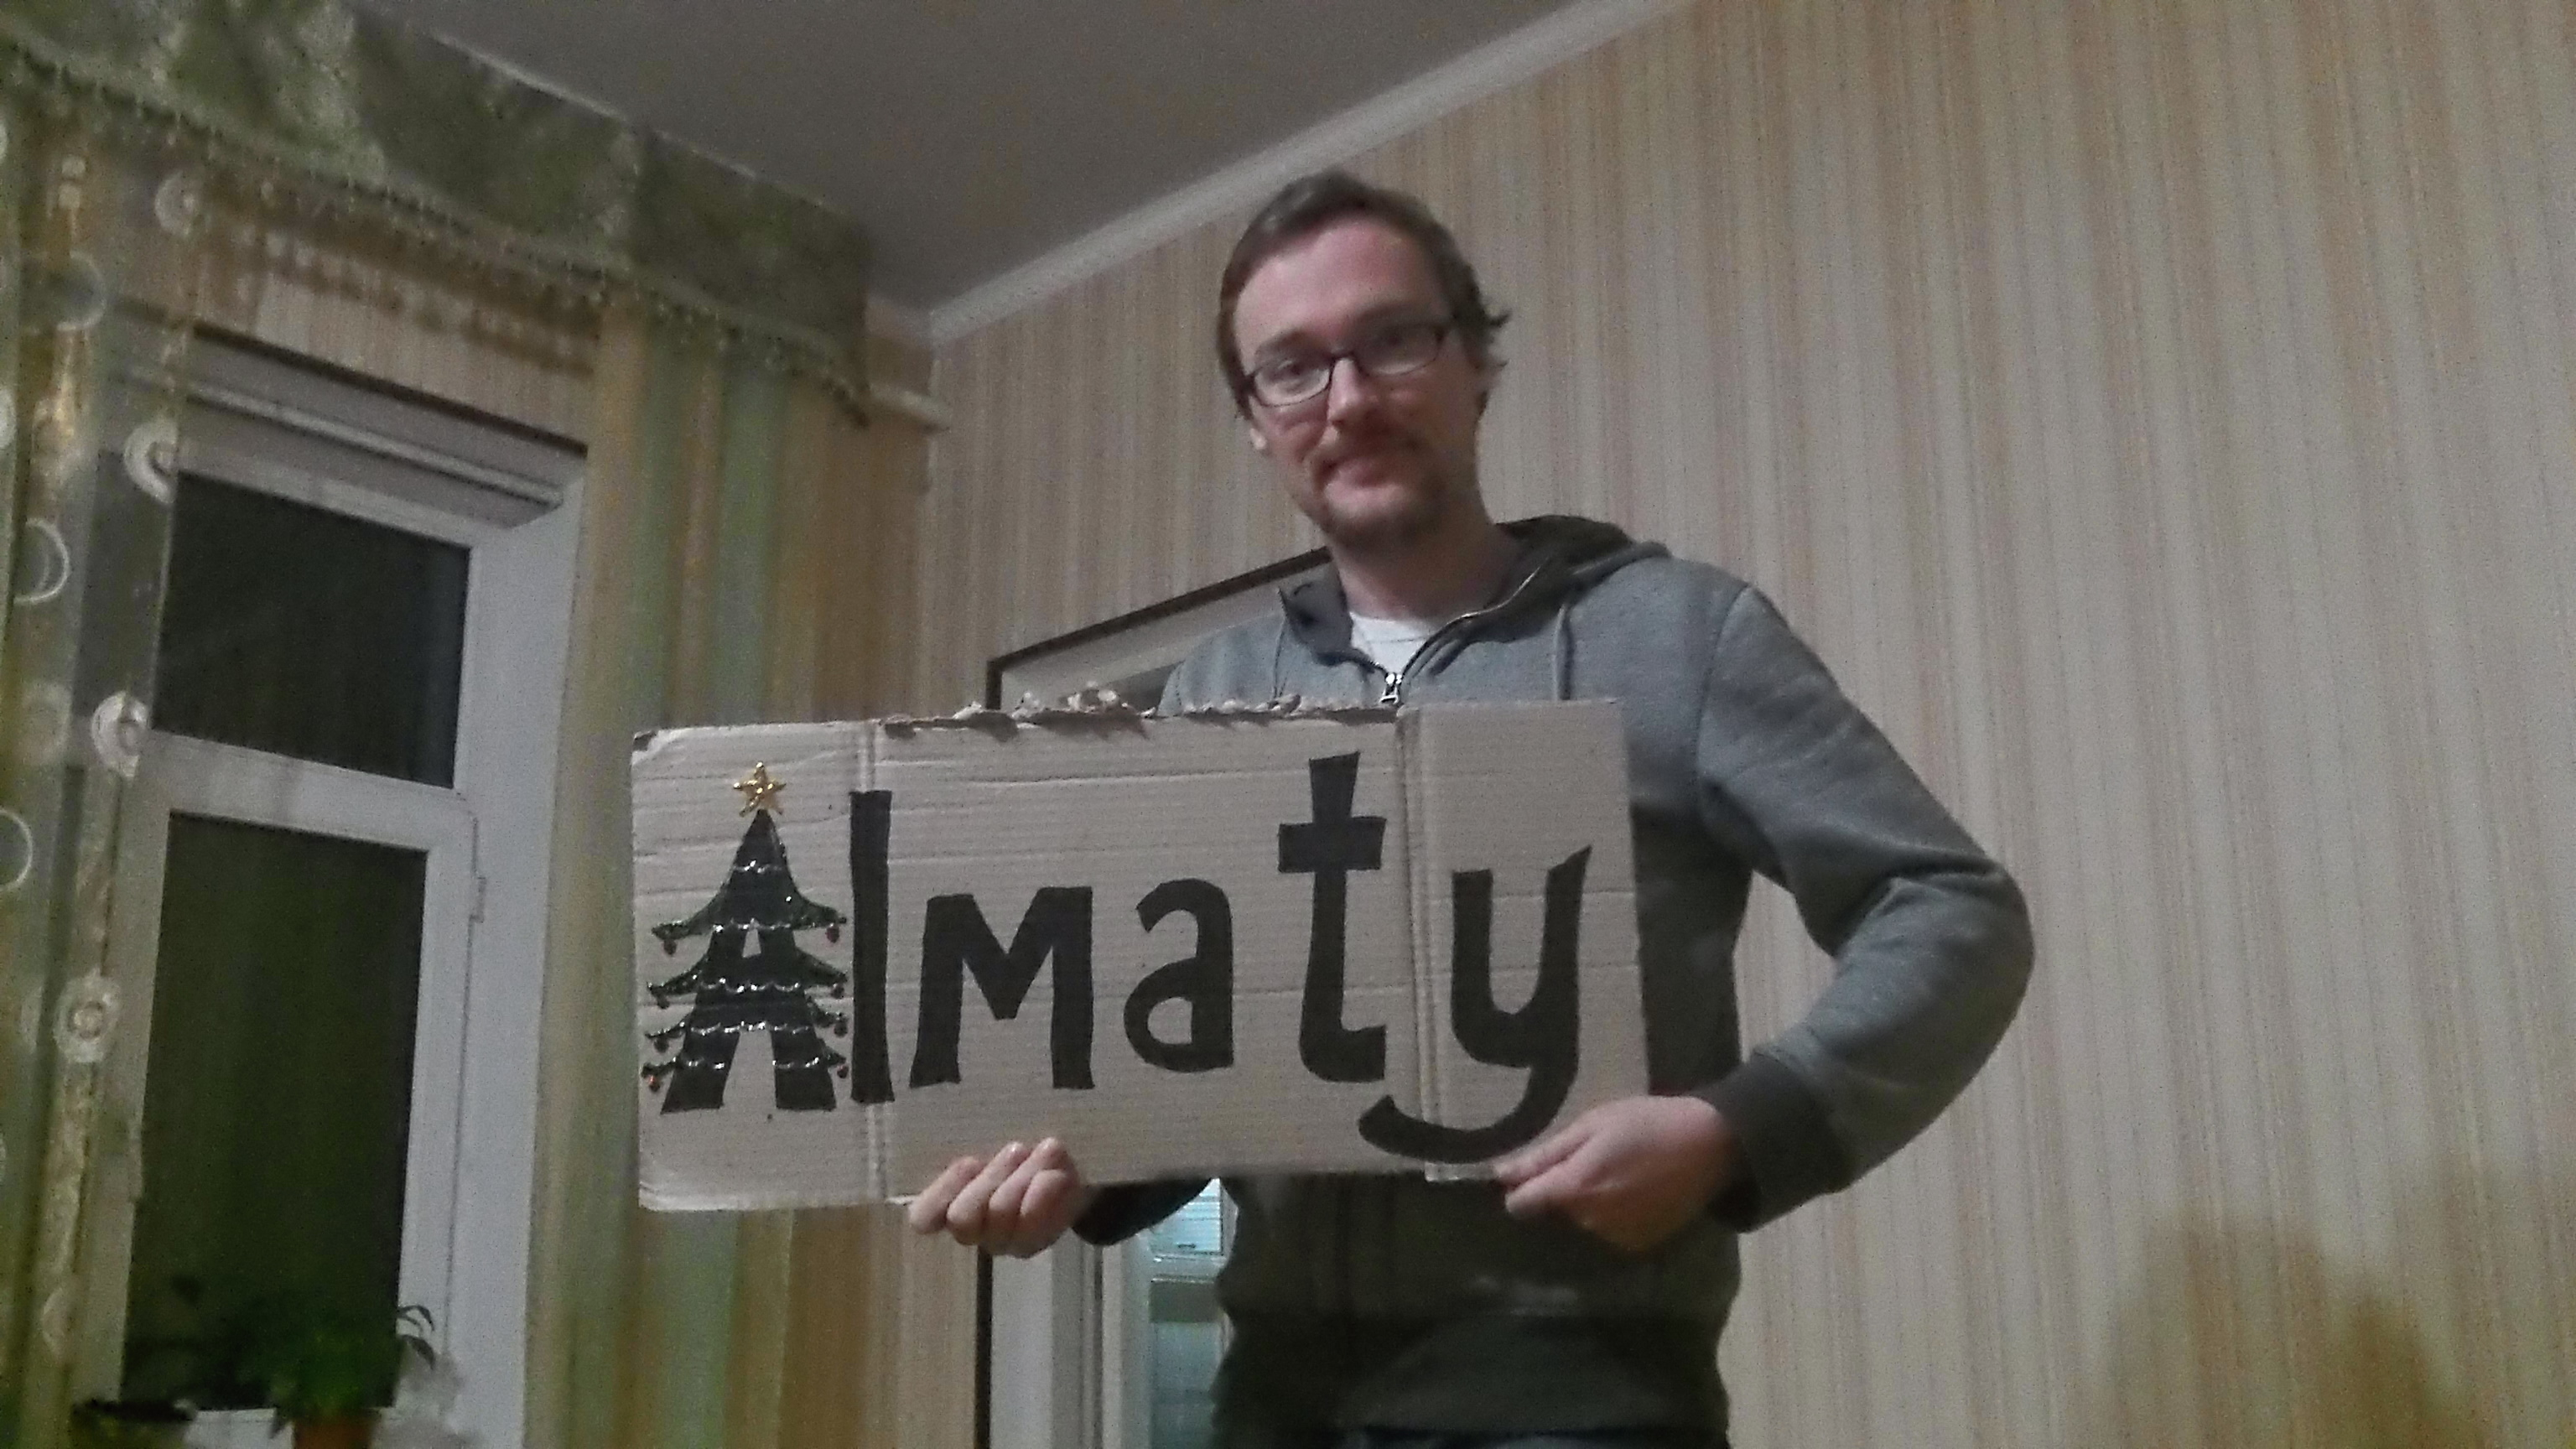 My festive Almaty sign